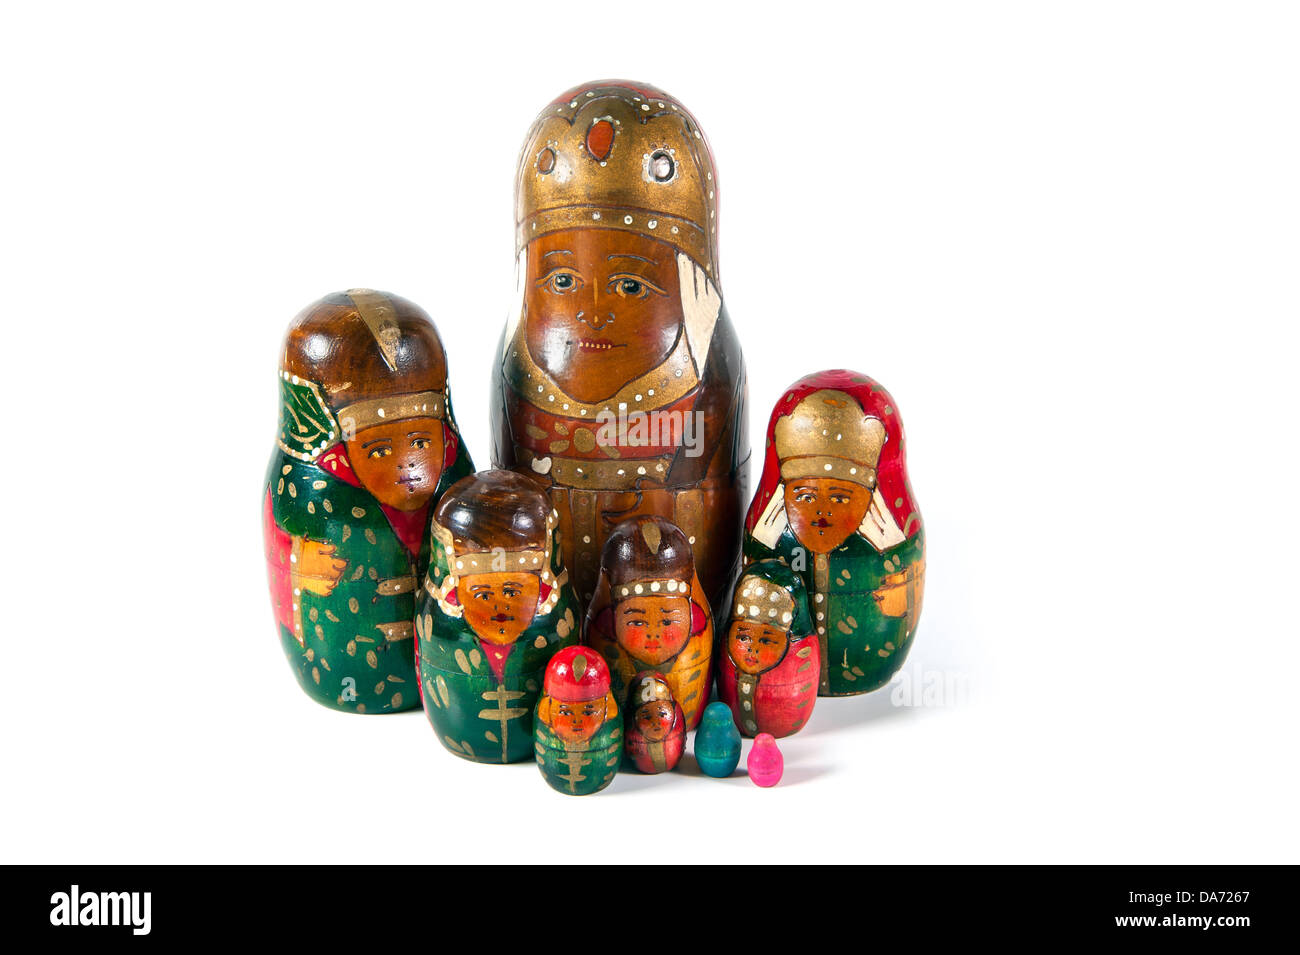 A family of an antique wooden matrioshka dolls - Stock Image